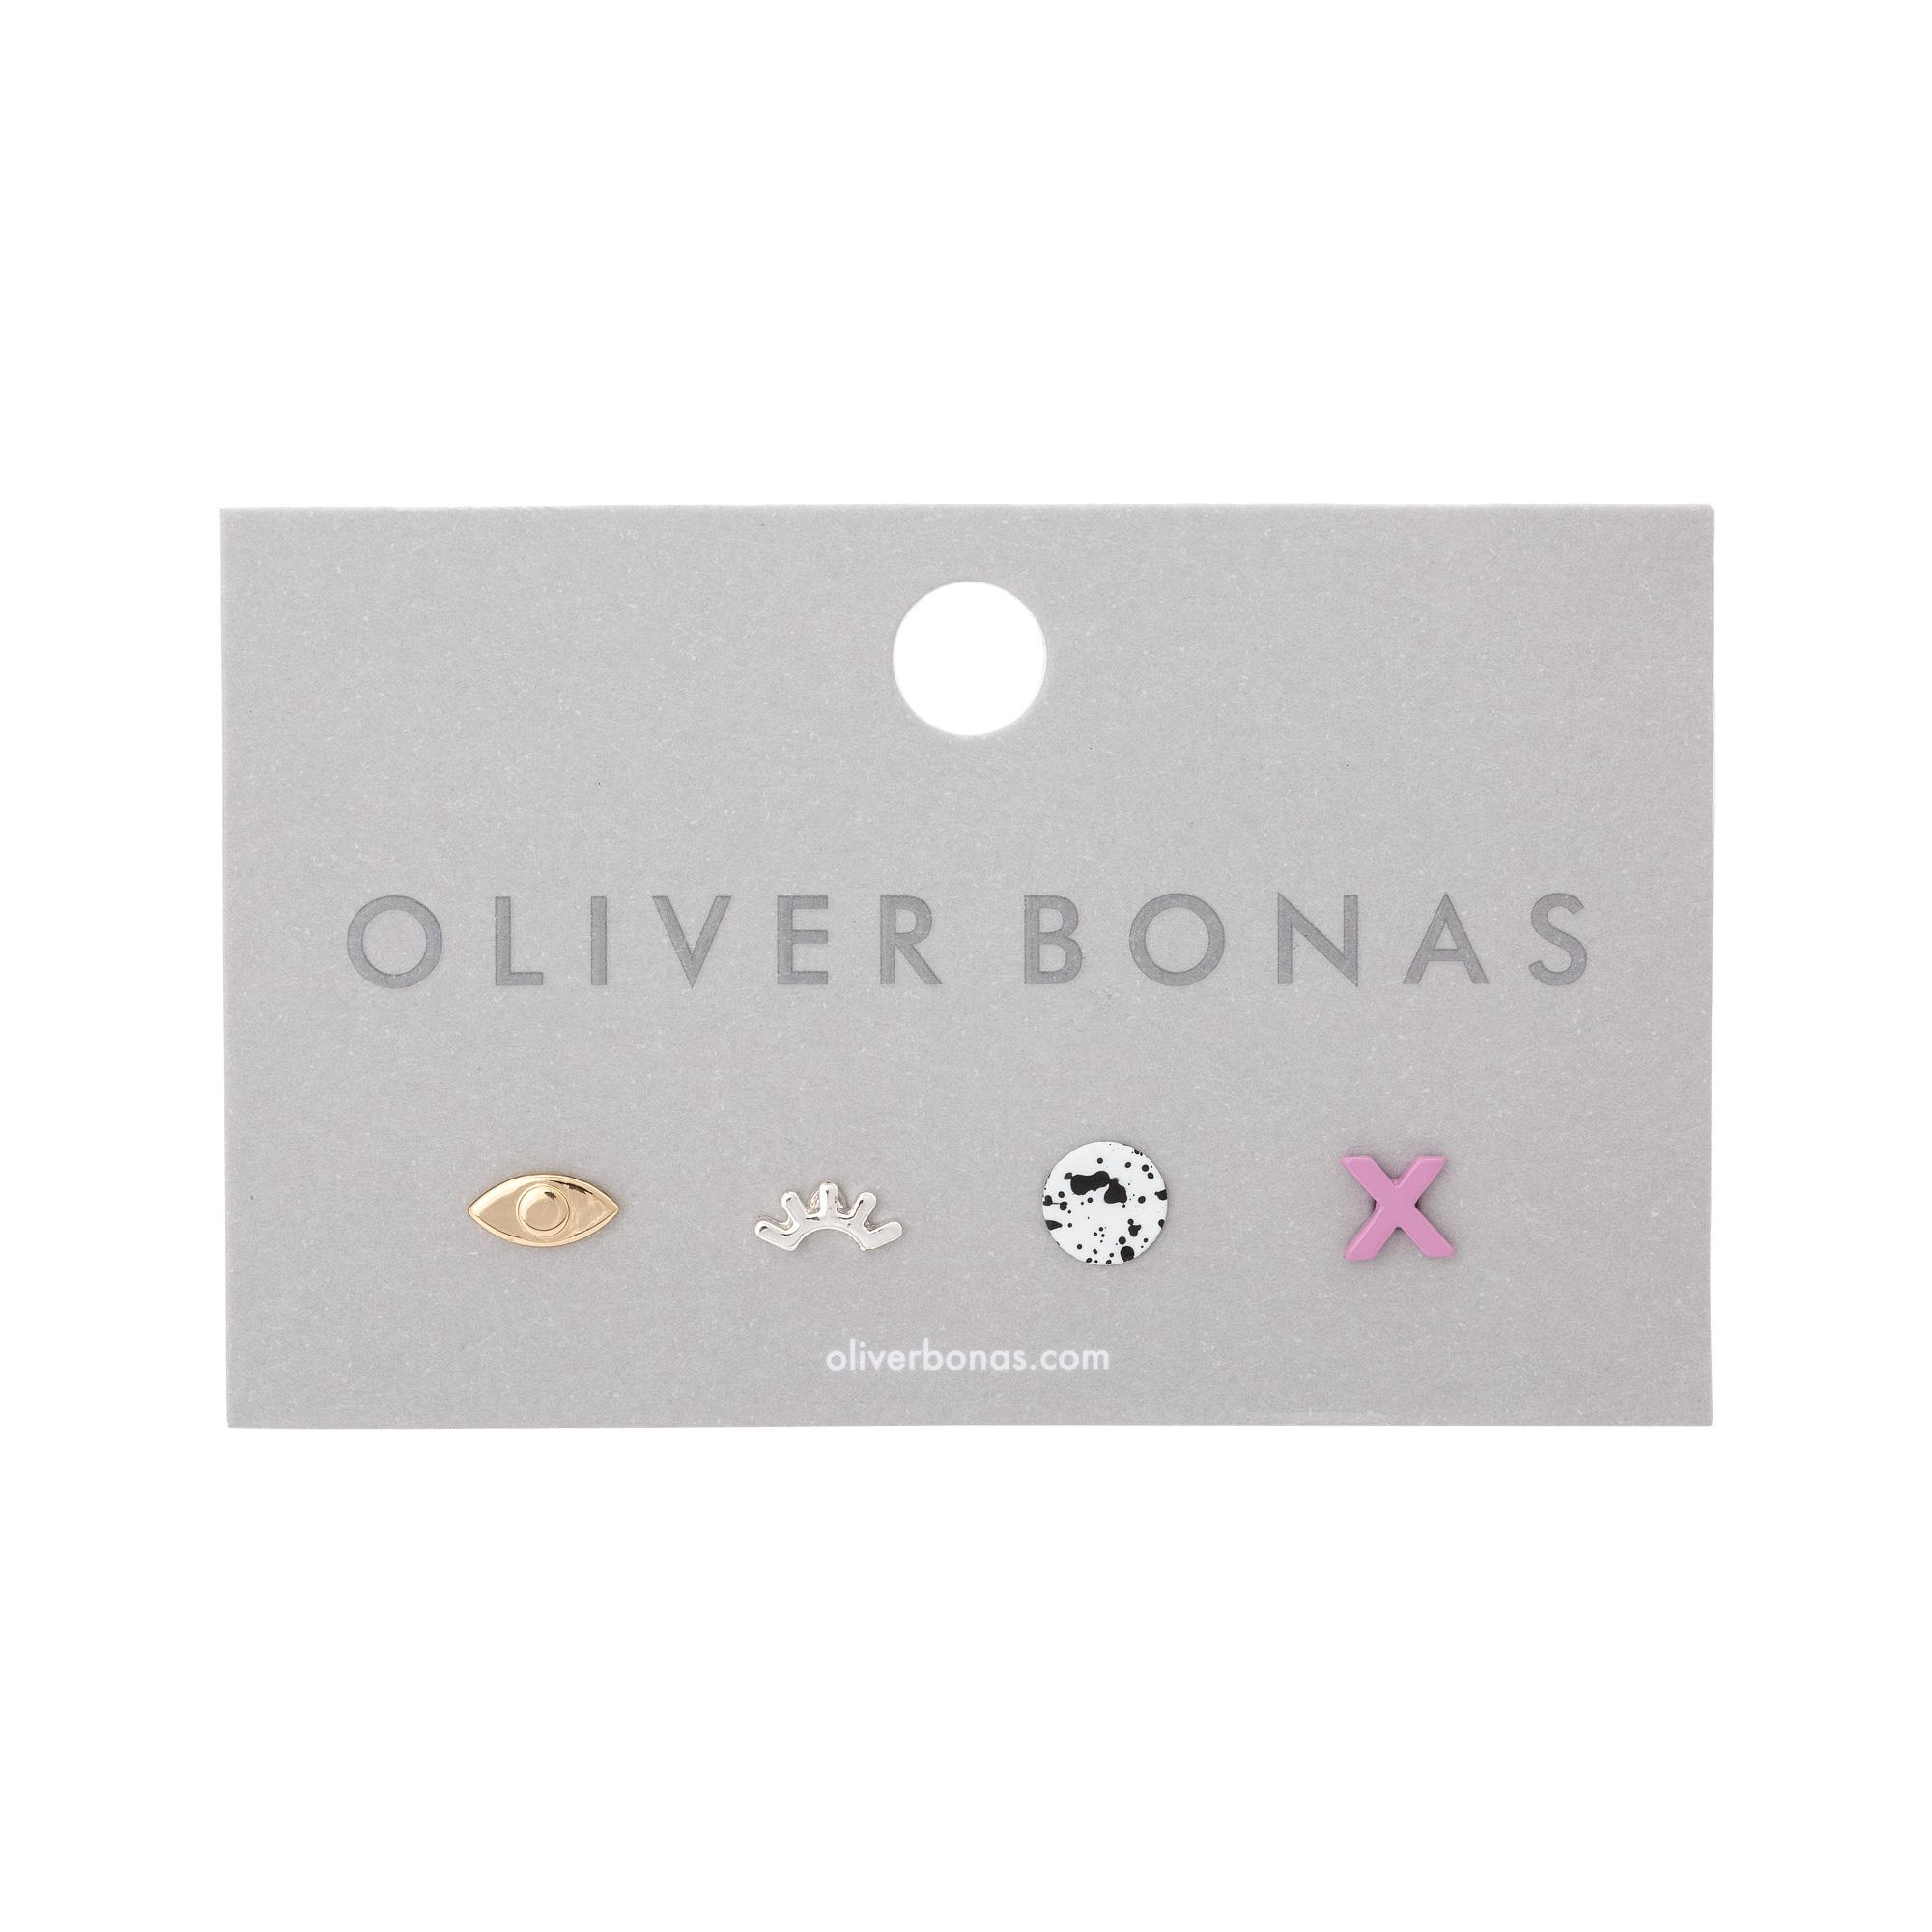 Lyst - Oliver Bonas Playful Mixed Stud Earrings Set Of Four in Metallic